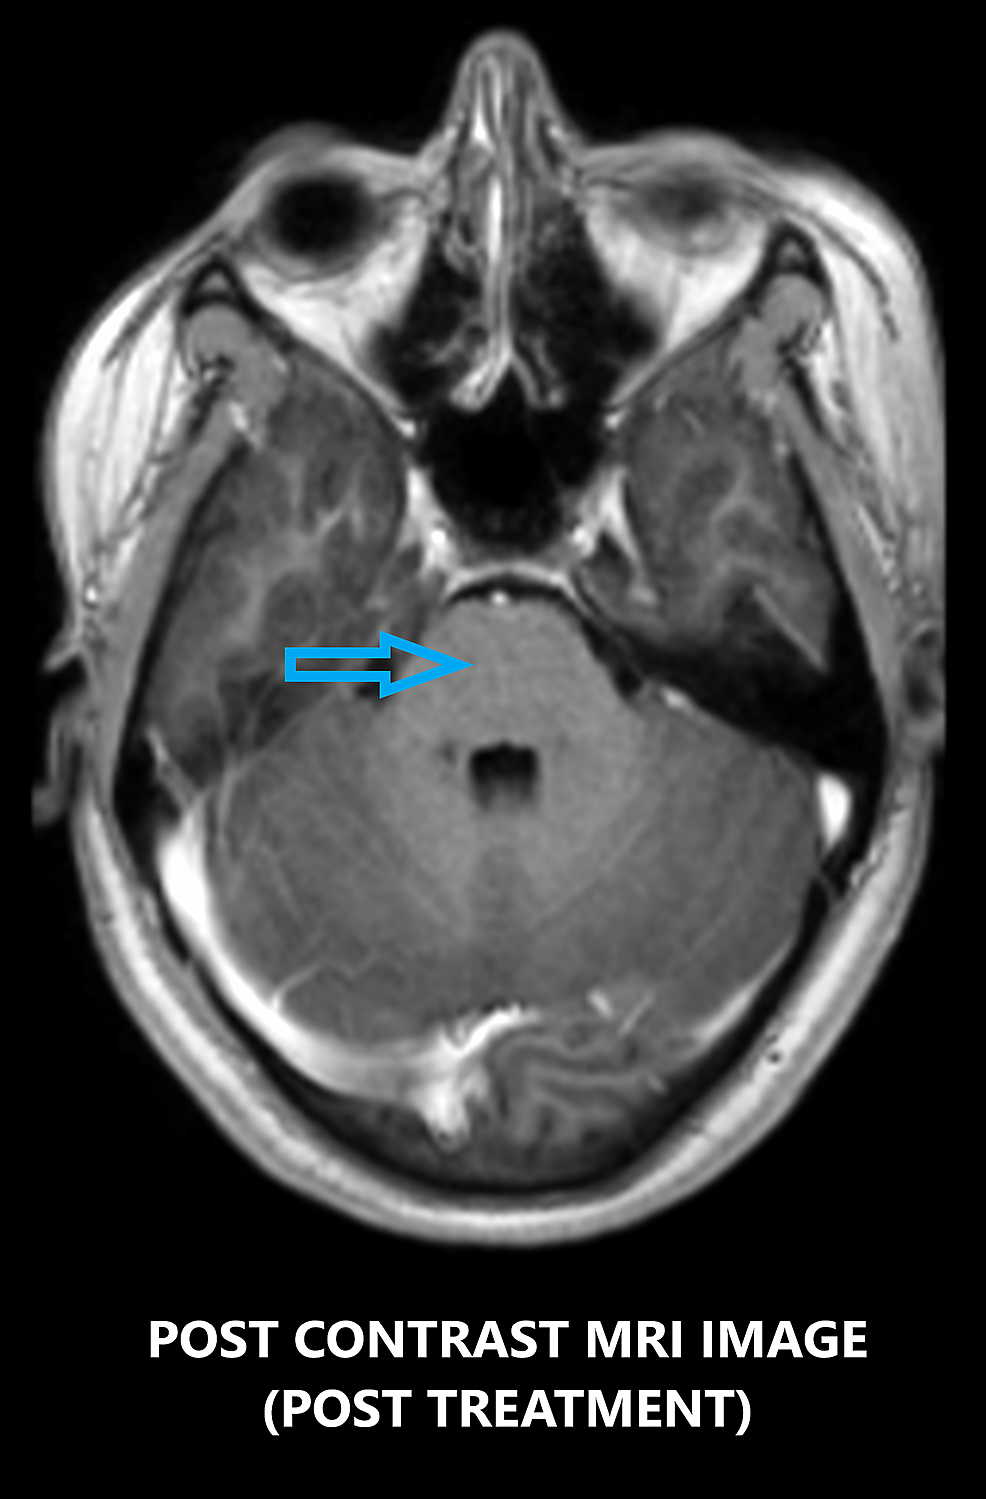 Contrast-enhanced-axial-MRI-image-showing-the-region-of-the-pons-after-treatment-with-high-dose-steroids-depicting-no-punctate-lesions-in-the-brainstem-(blue-arrow).